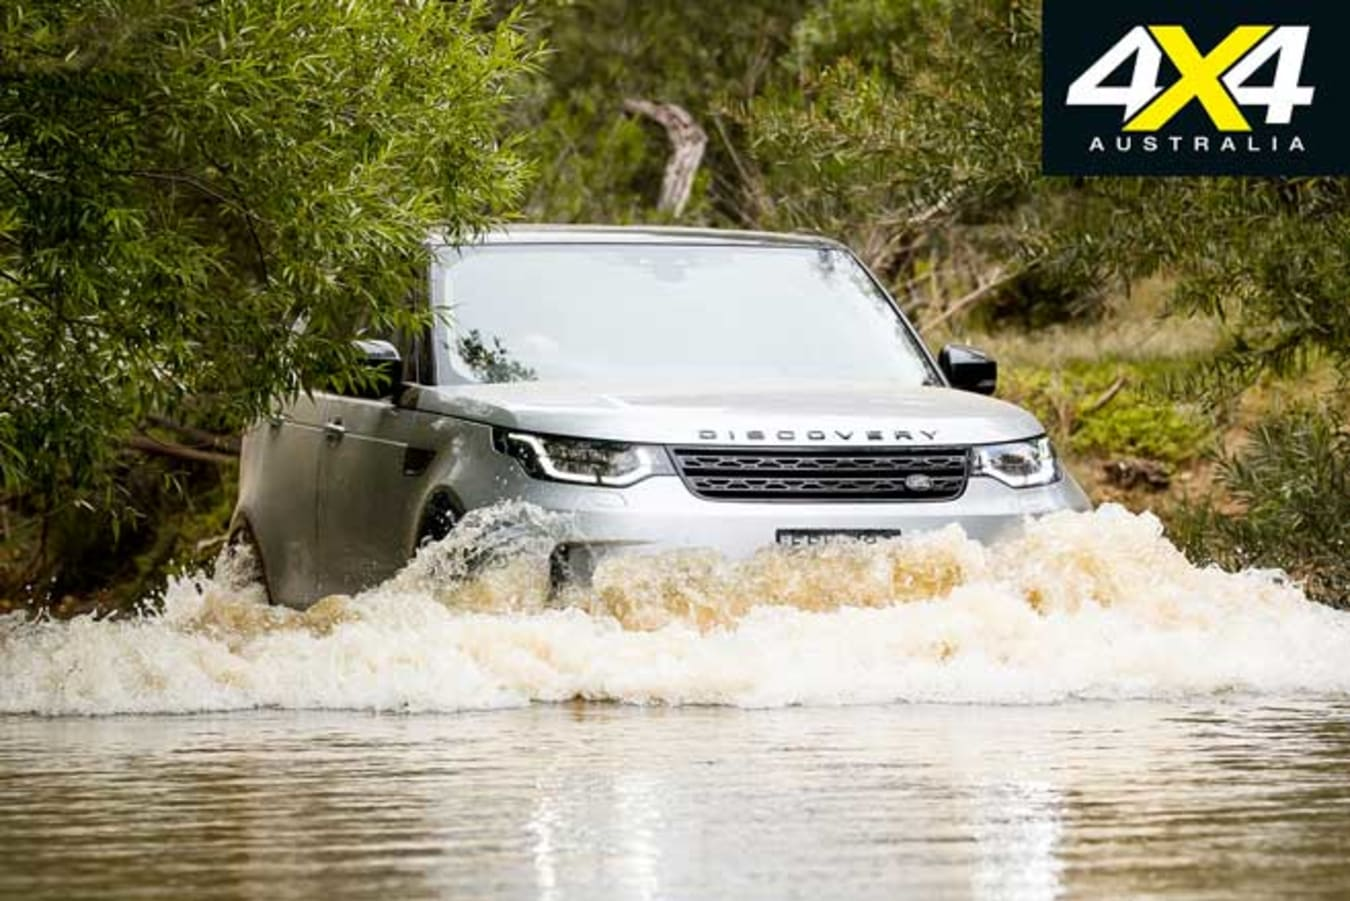 2020 4 X 4 Of The Year Land Rover Discovery Sd 6 Water Wading Jpg